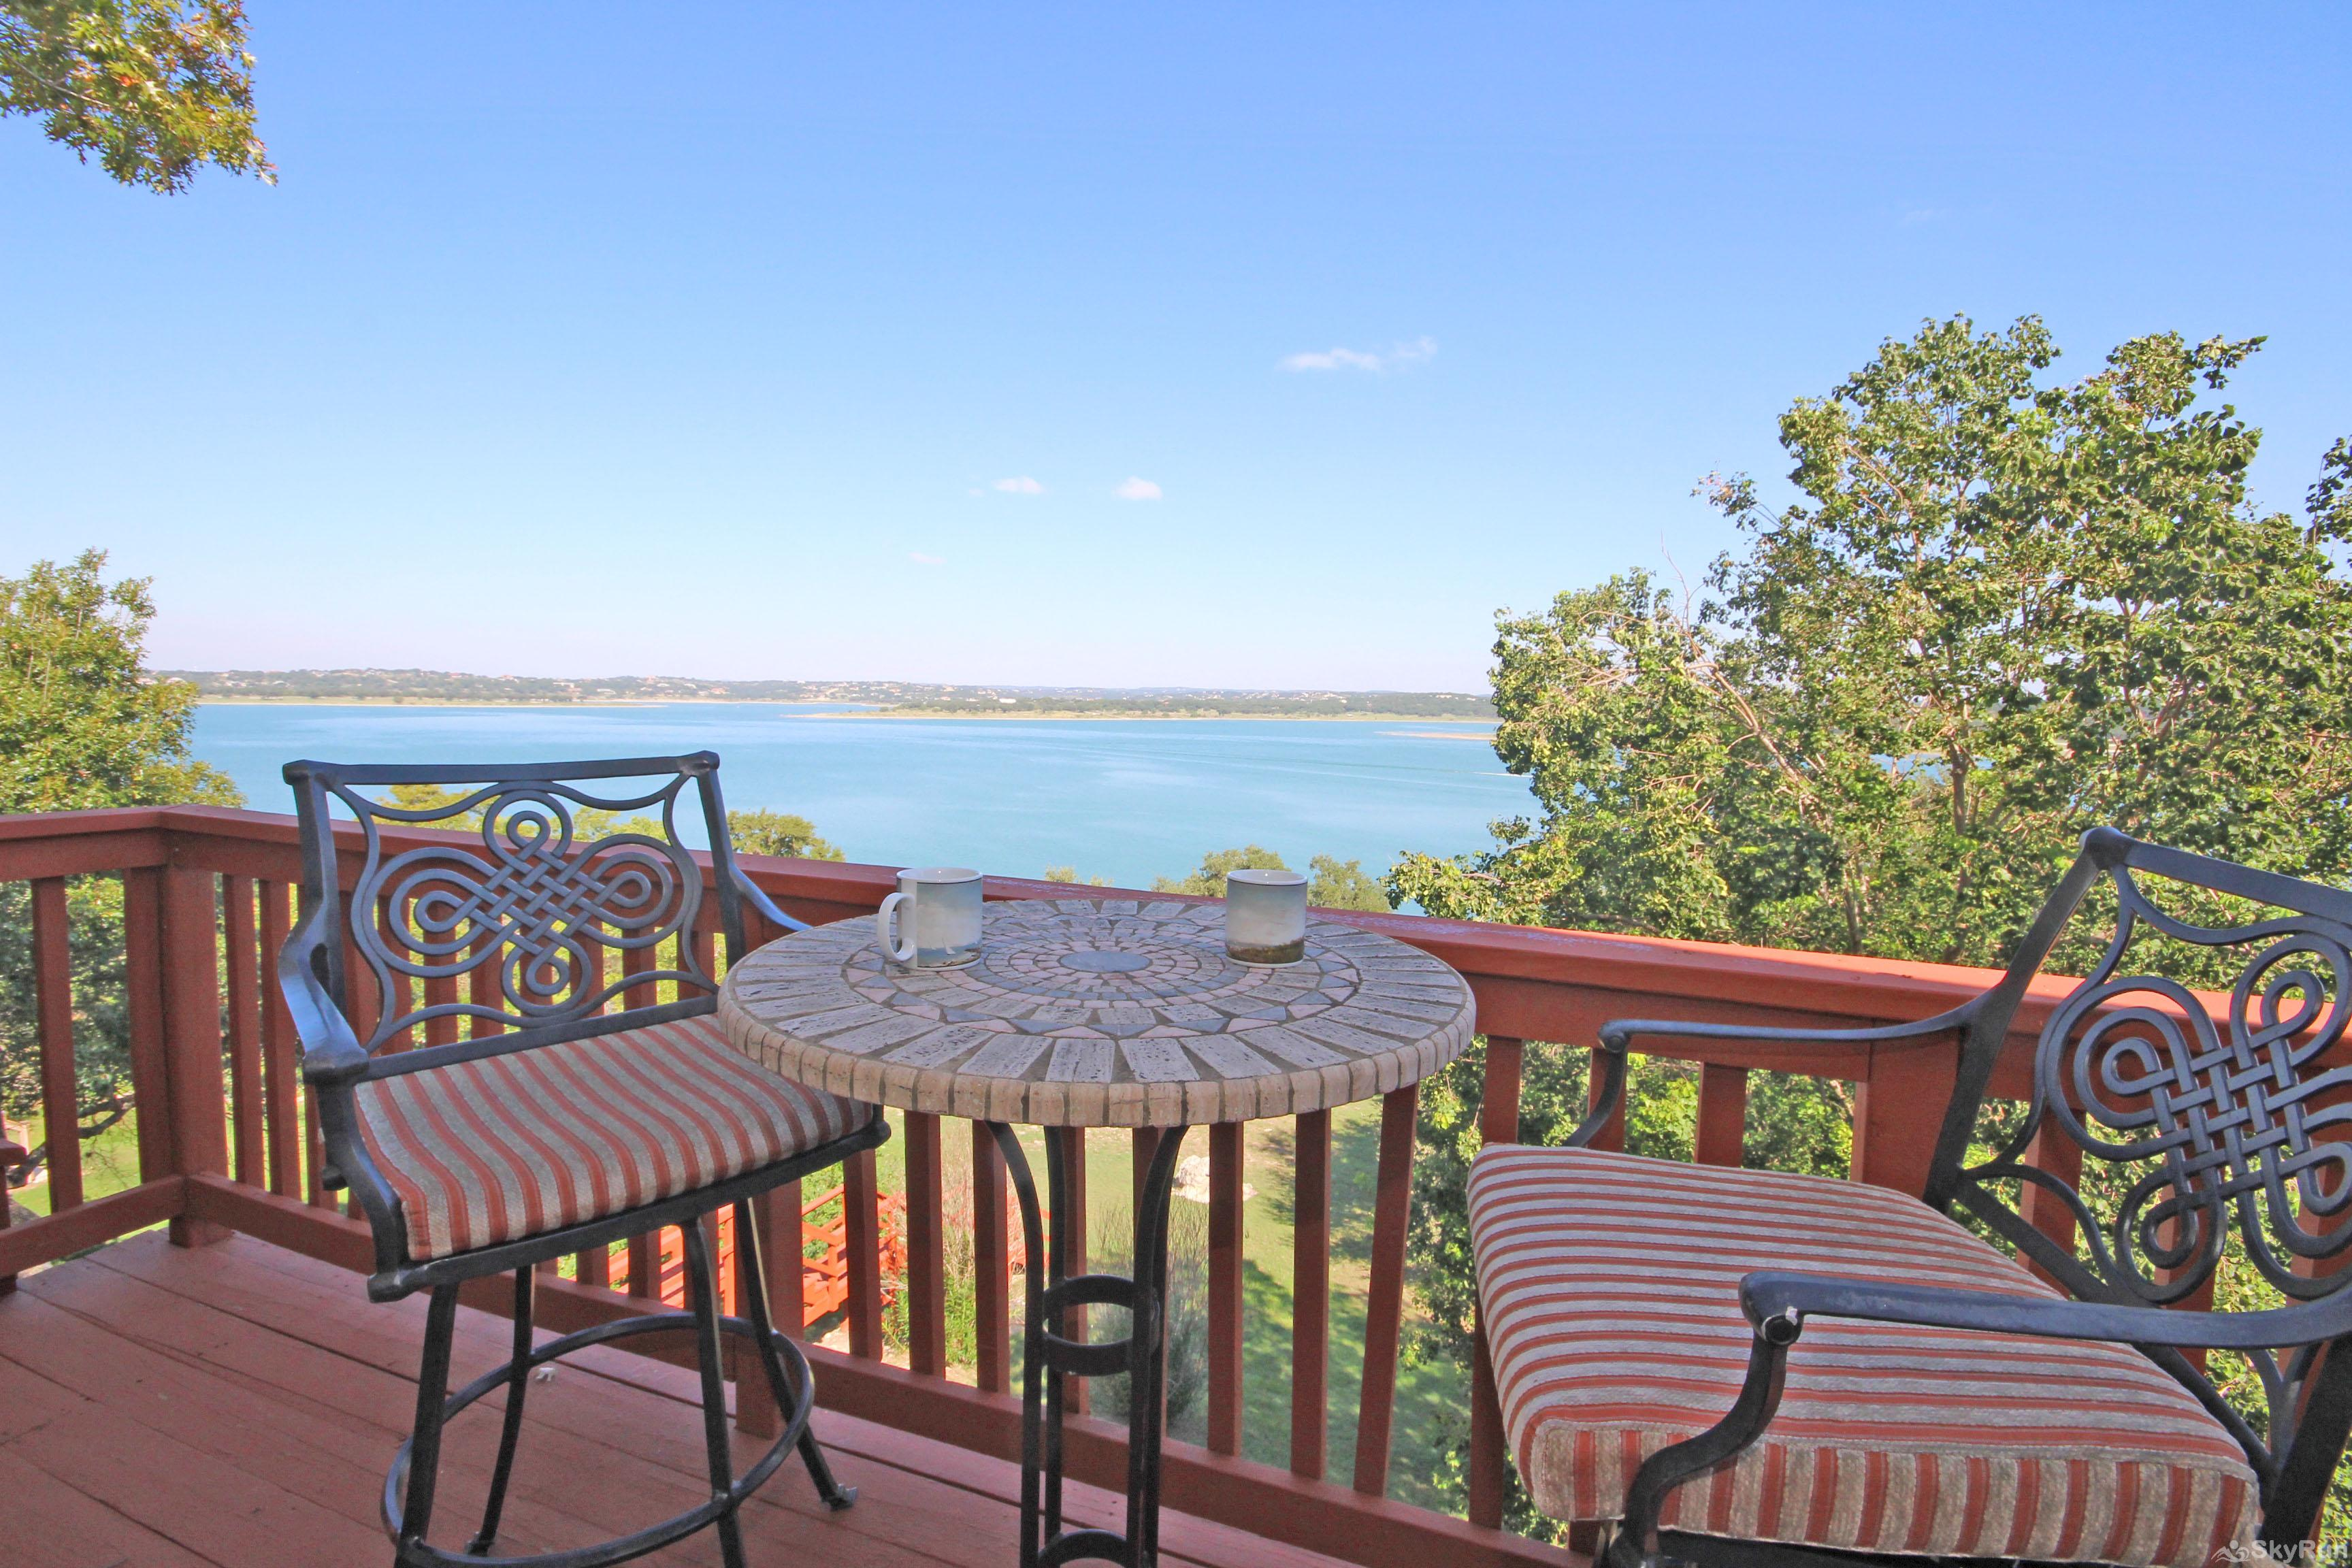 PLAYA DEL SOL Private Master Deck Overlooking Canyon Lake